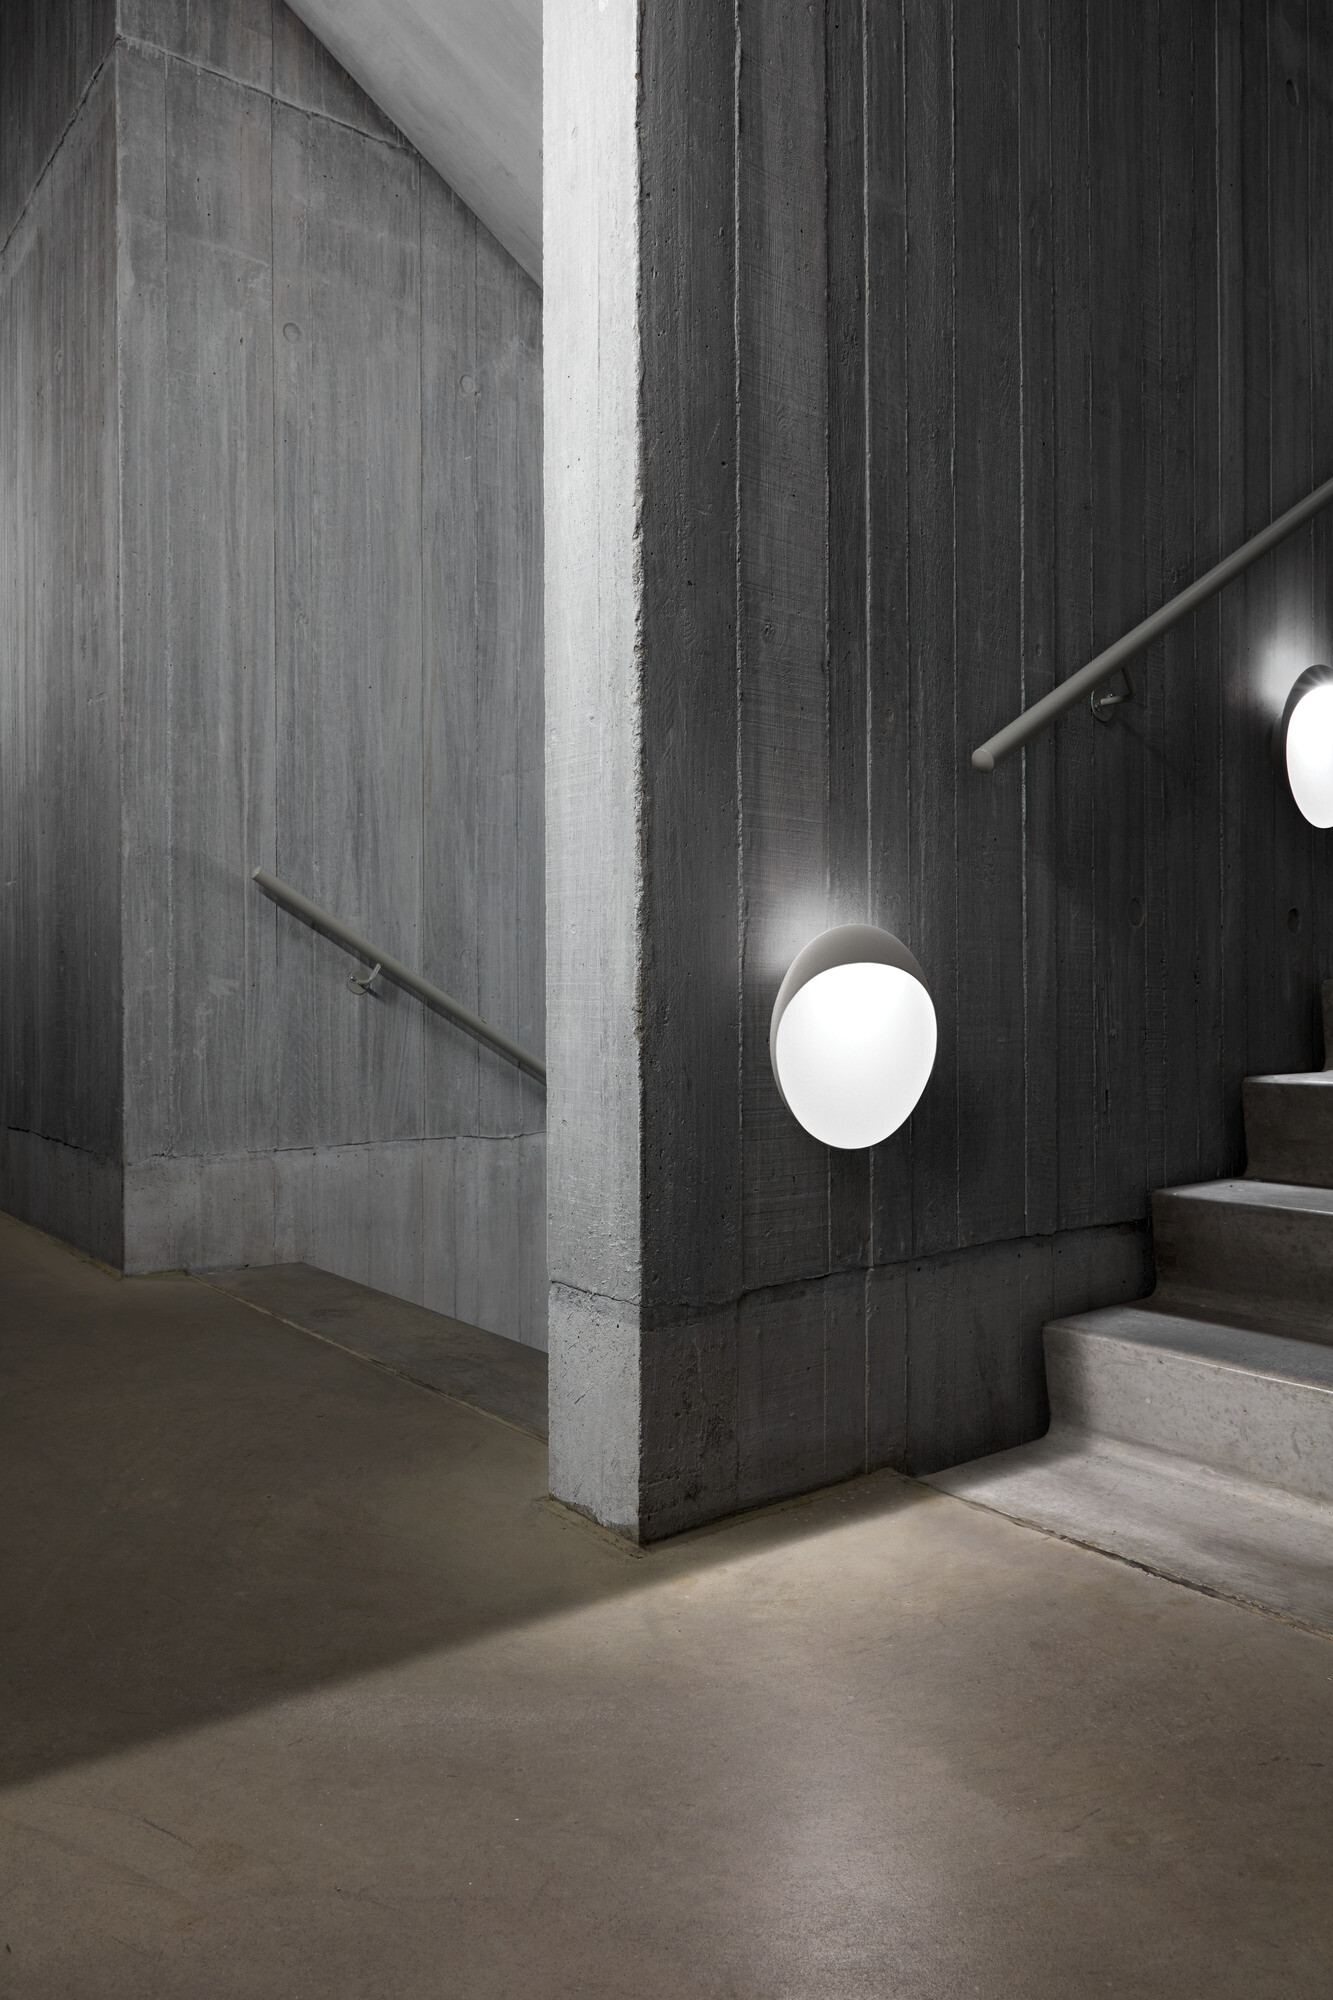 Flindt Wall By Louis Poulsen Media Photos And Videos 6 Archello